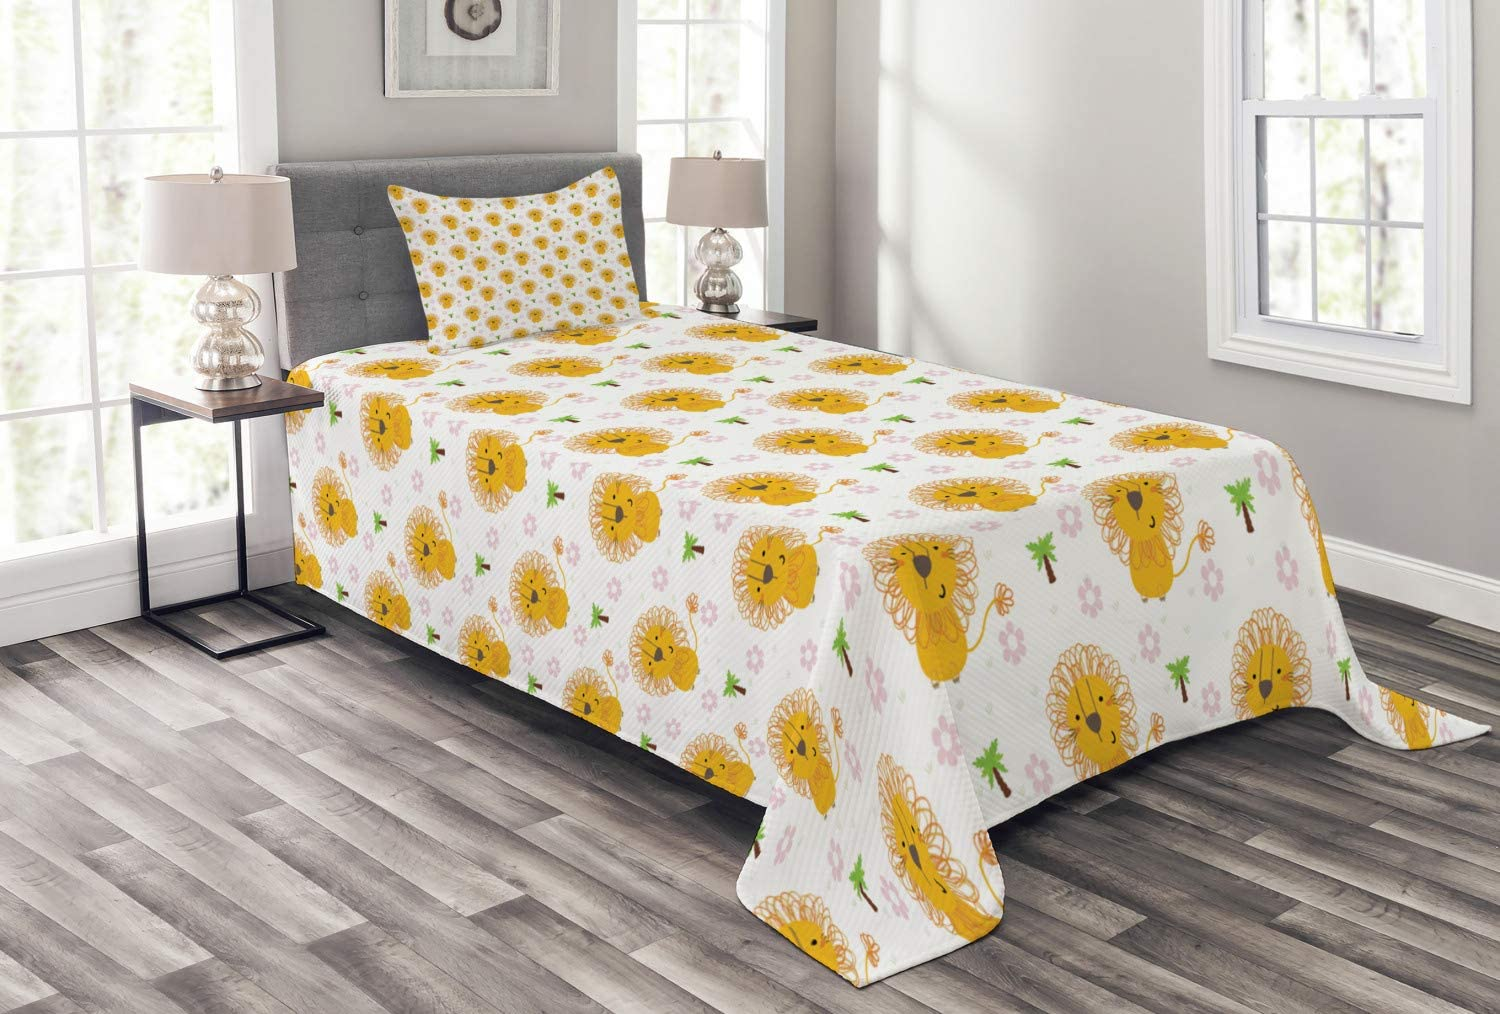 Lunarable Lion Bedspread Childrens Animal Style Ranking TOP5 Forest Cartoon Ranking TOP20